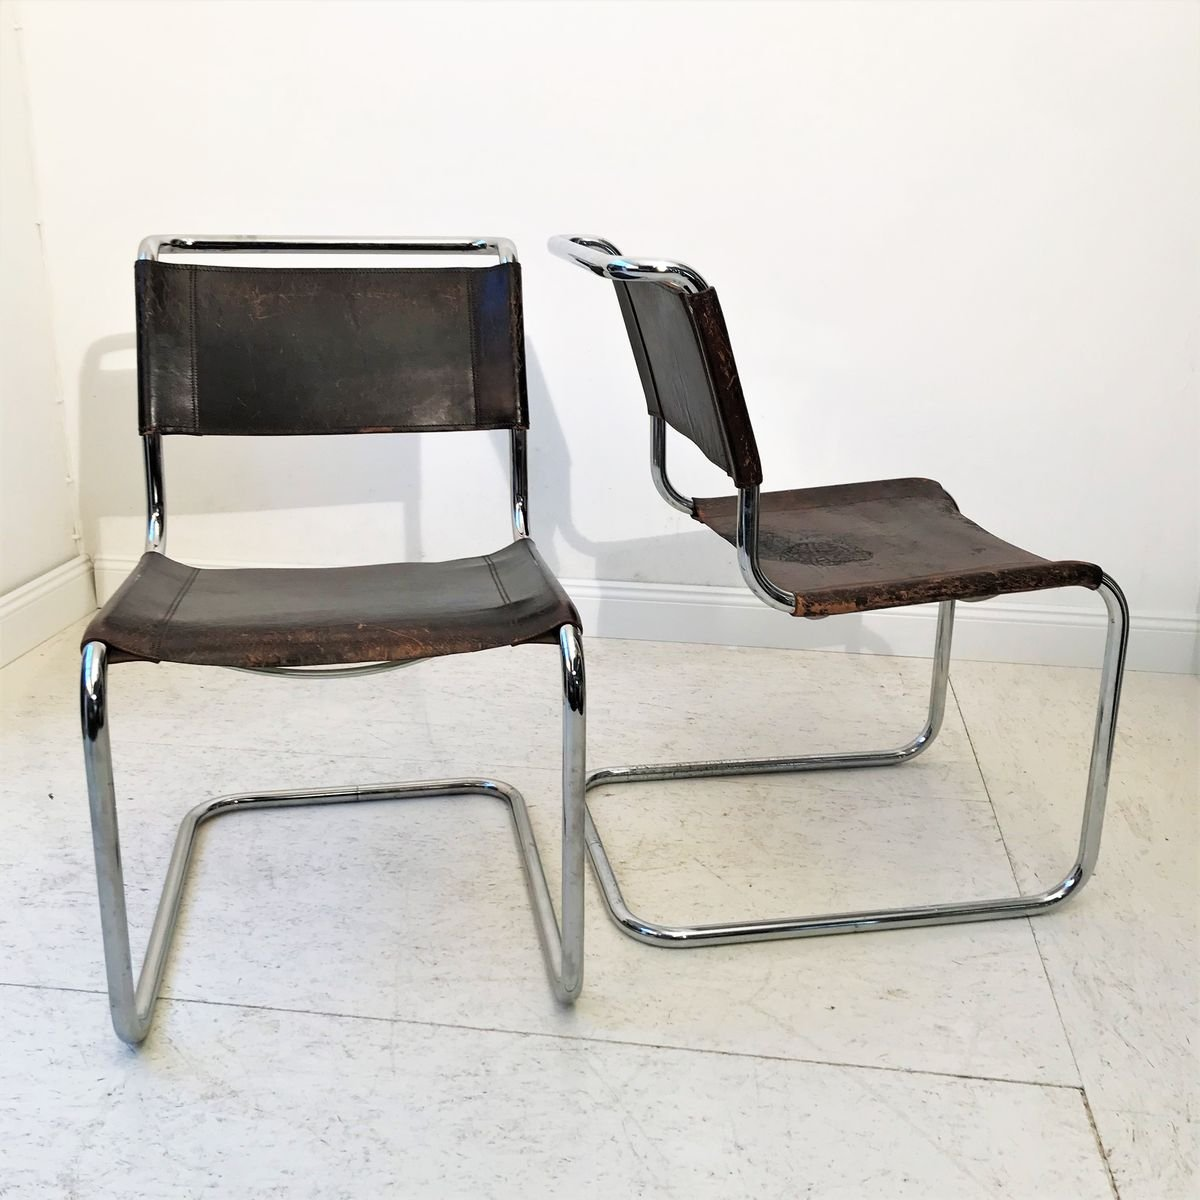 Vintage S33 Side Chairs By Mart Stam Und Marcel Breuer For Thonet 1984 Set Of 2 For Sale At Pamono